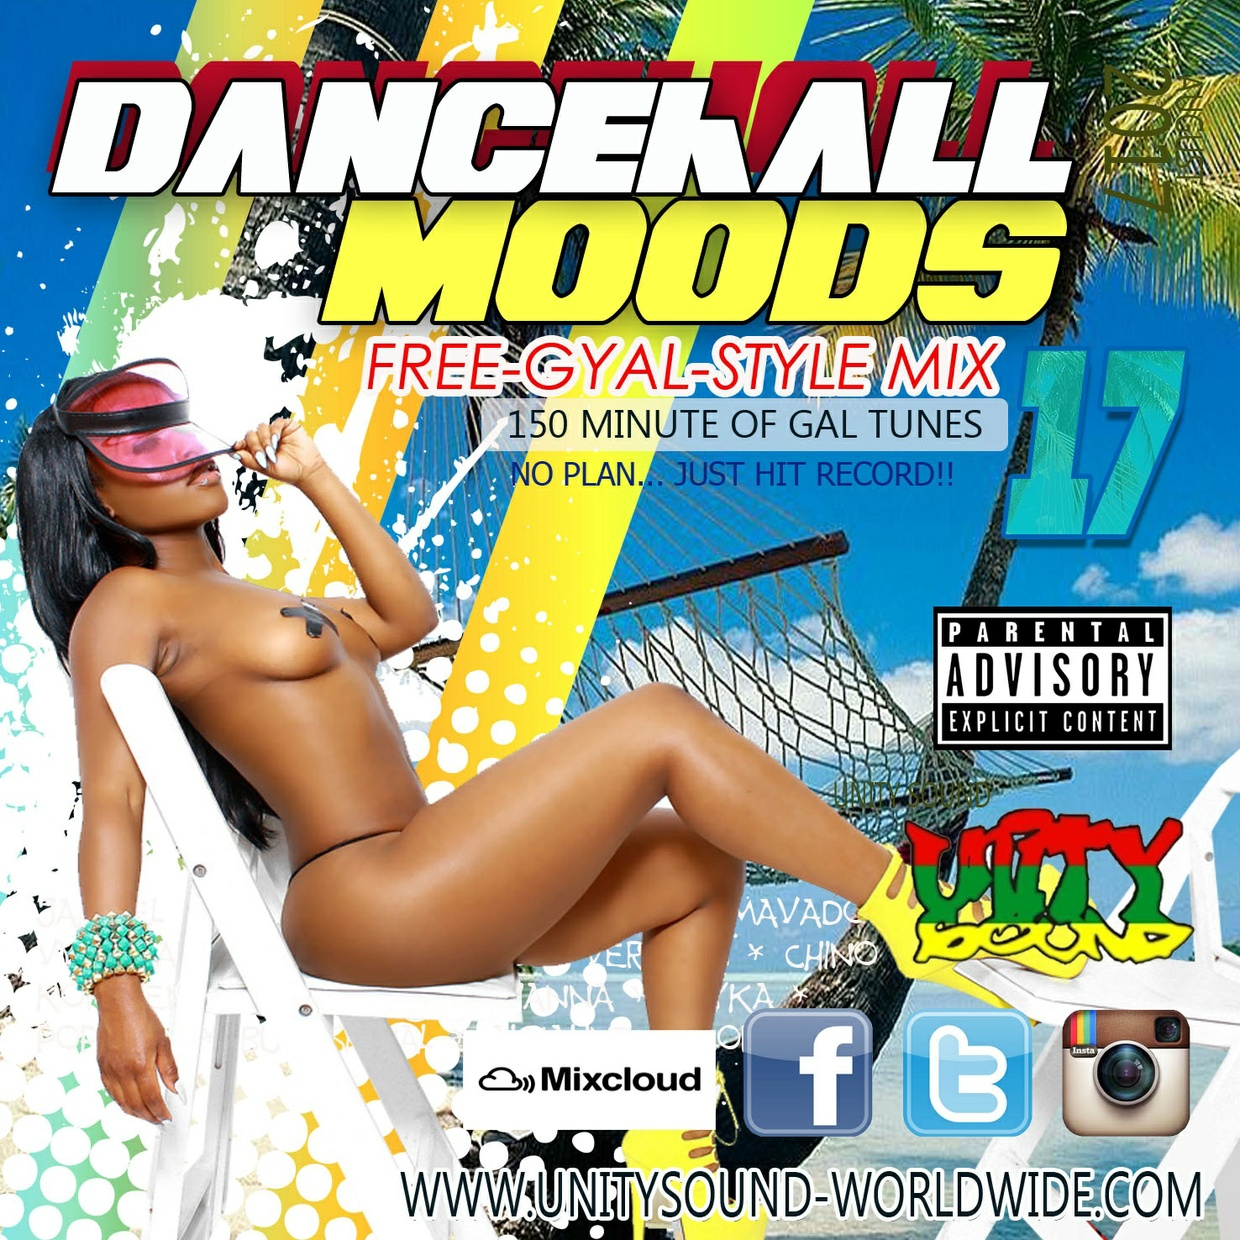 [Single-Tracked Download] Unity Sound - Dancehall Moods 17 - Free Gyal Style Mix - 2017